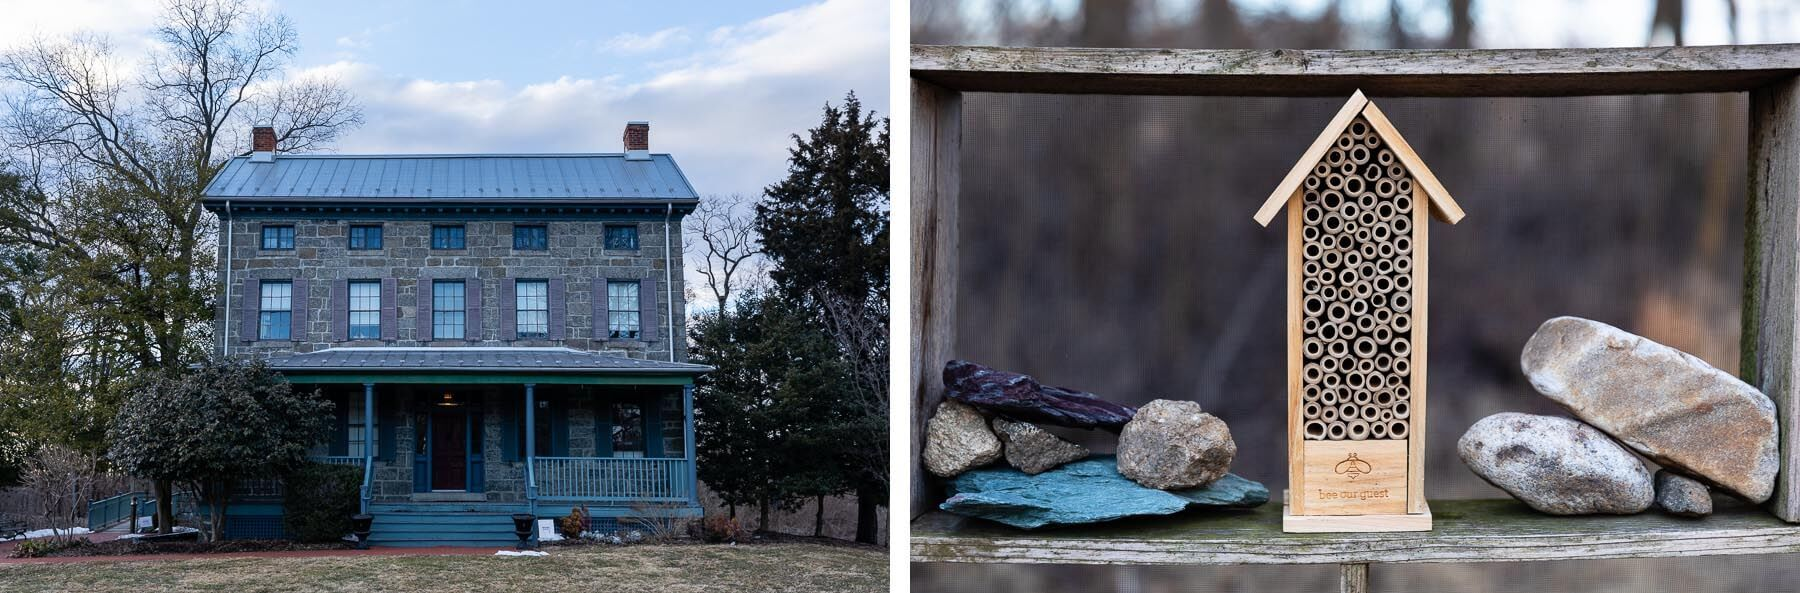 To the left, a stone home sits on the property. To the right, a small bee house.